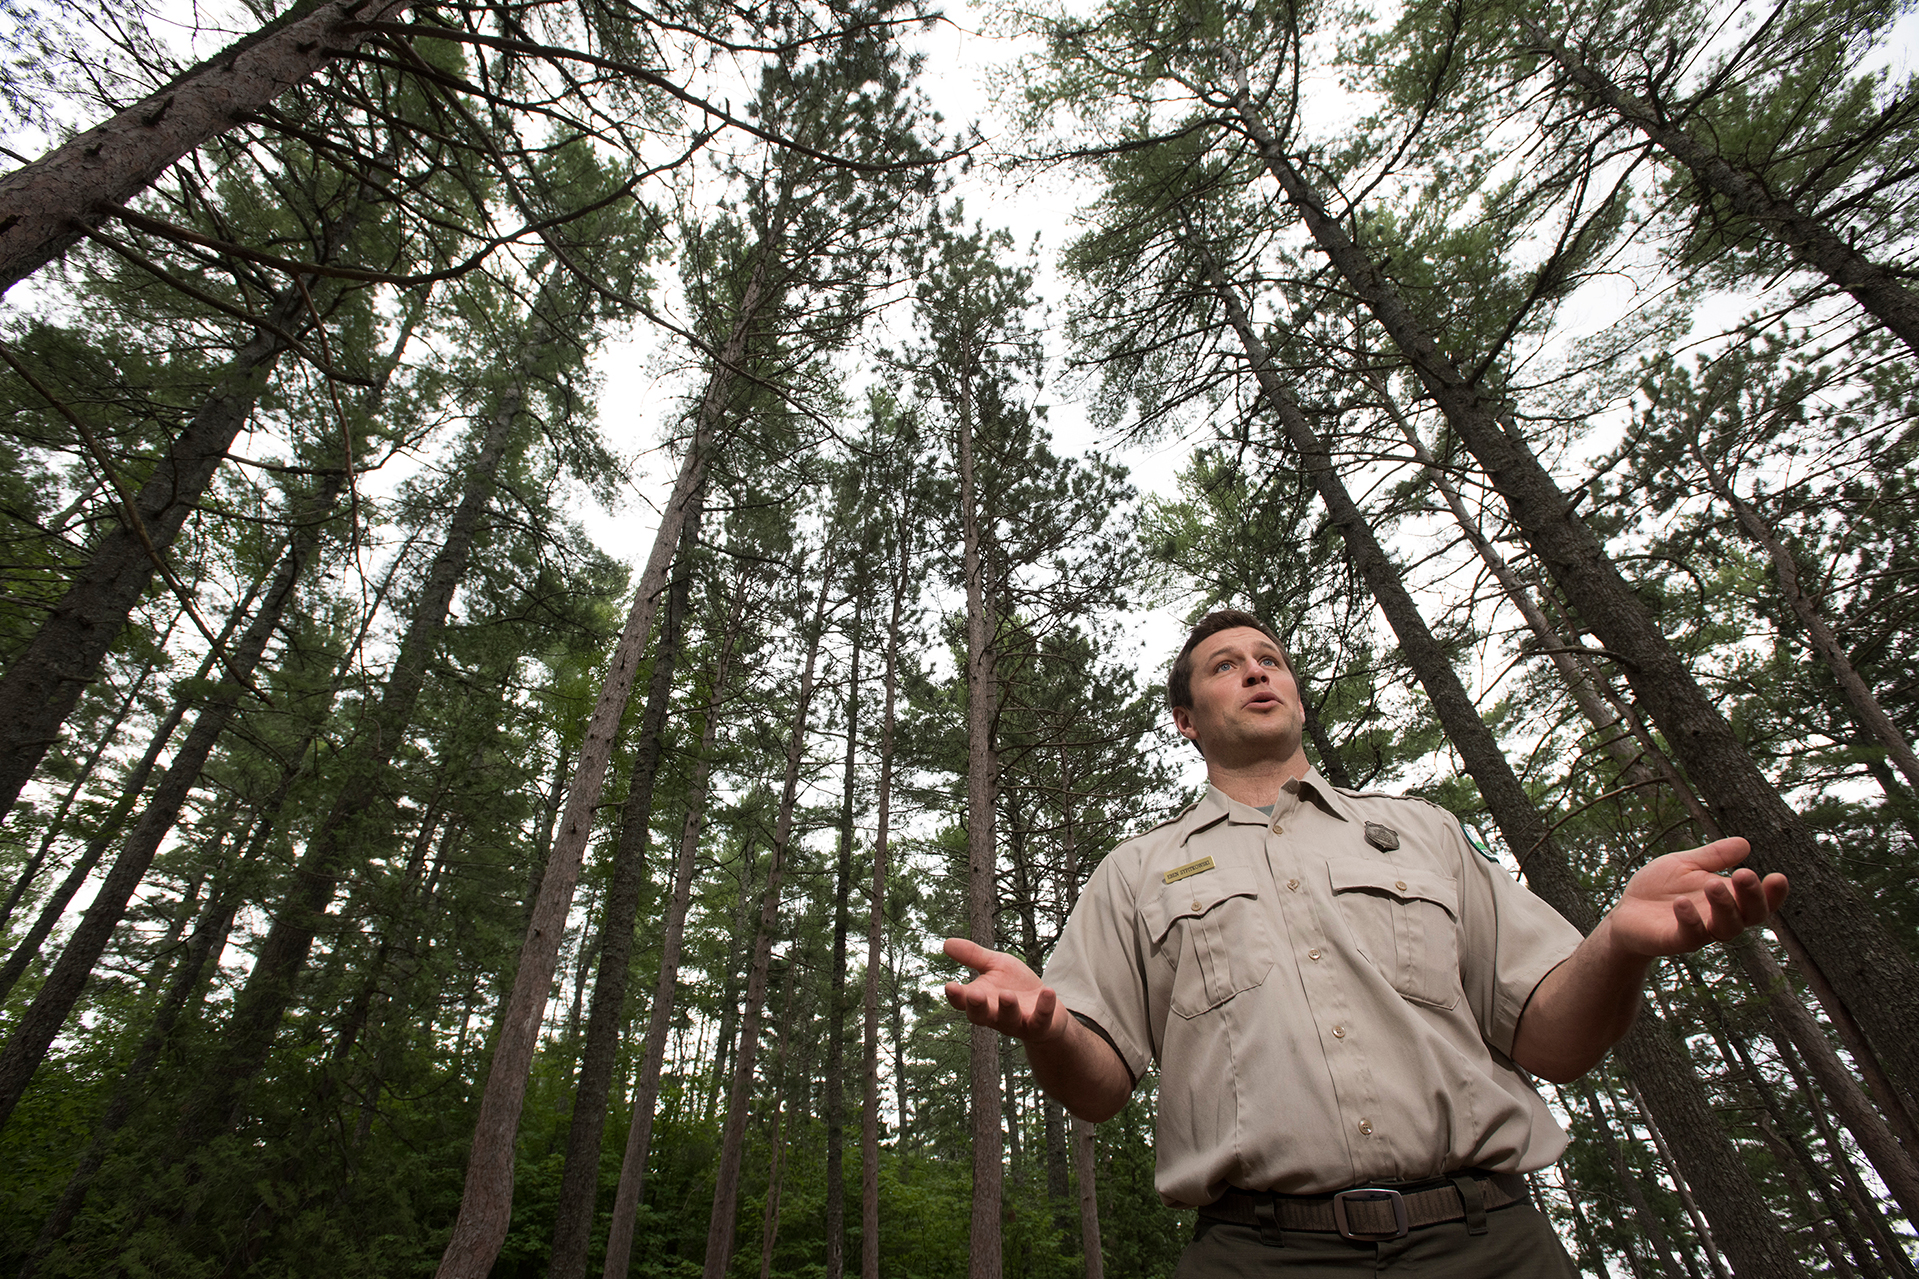 Baxter State Park, Maine—08-03-2018— Eben Sypitlowski answers question about Baxter State Park and the furture of the park under his direction as the newest director of the park. Kevin Bennett Photo